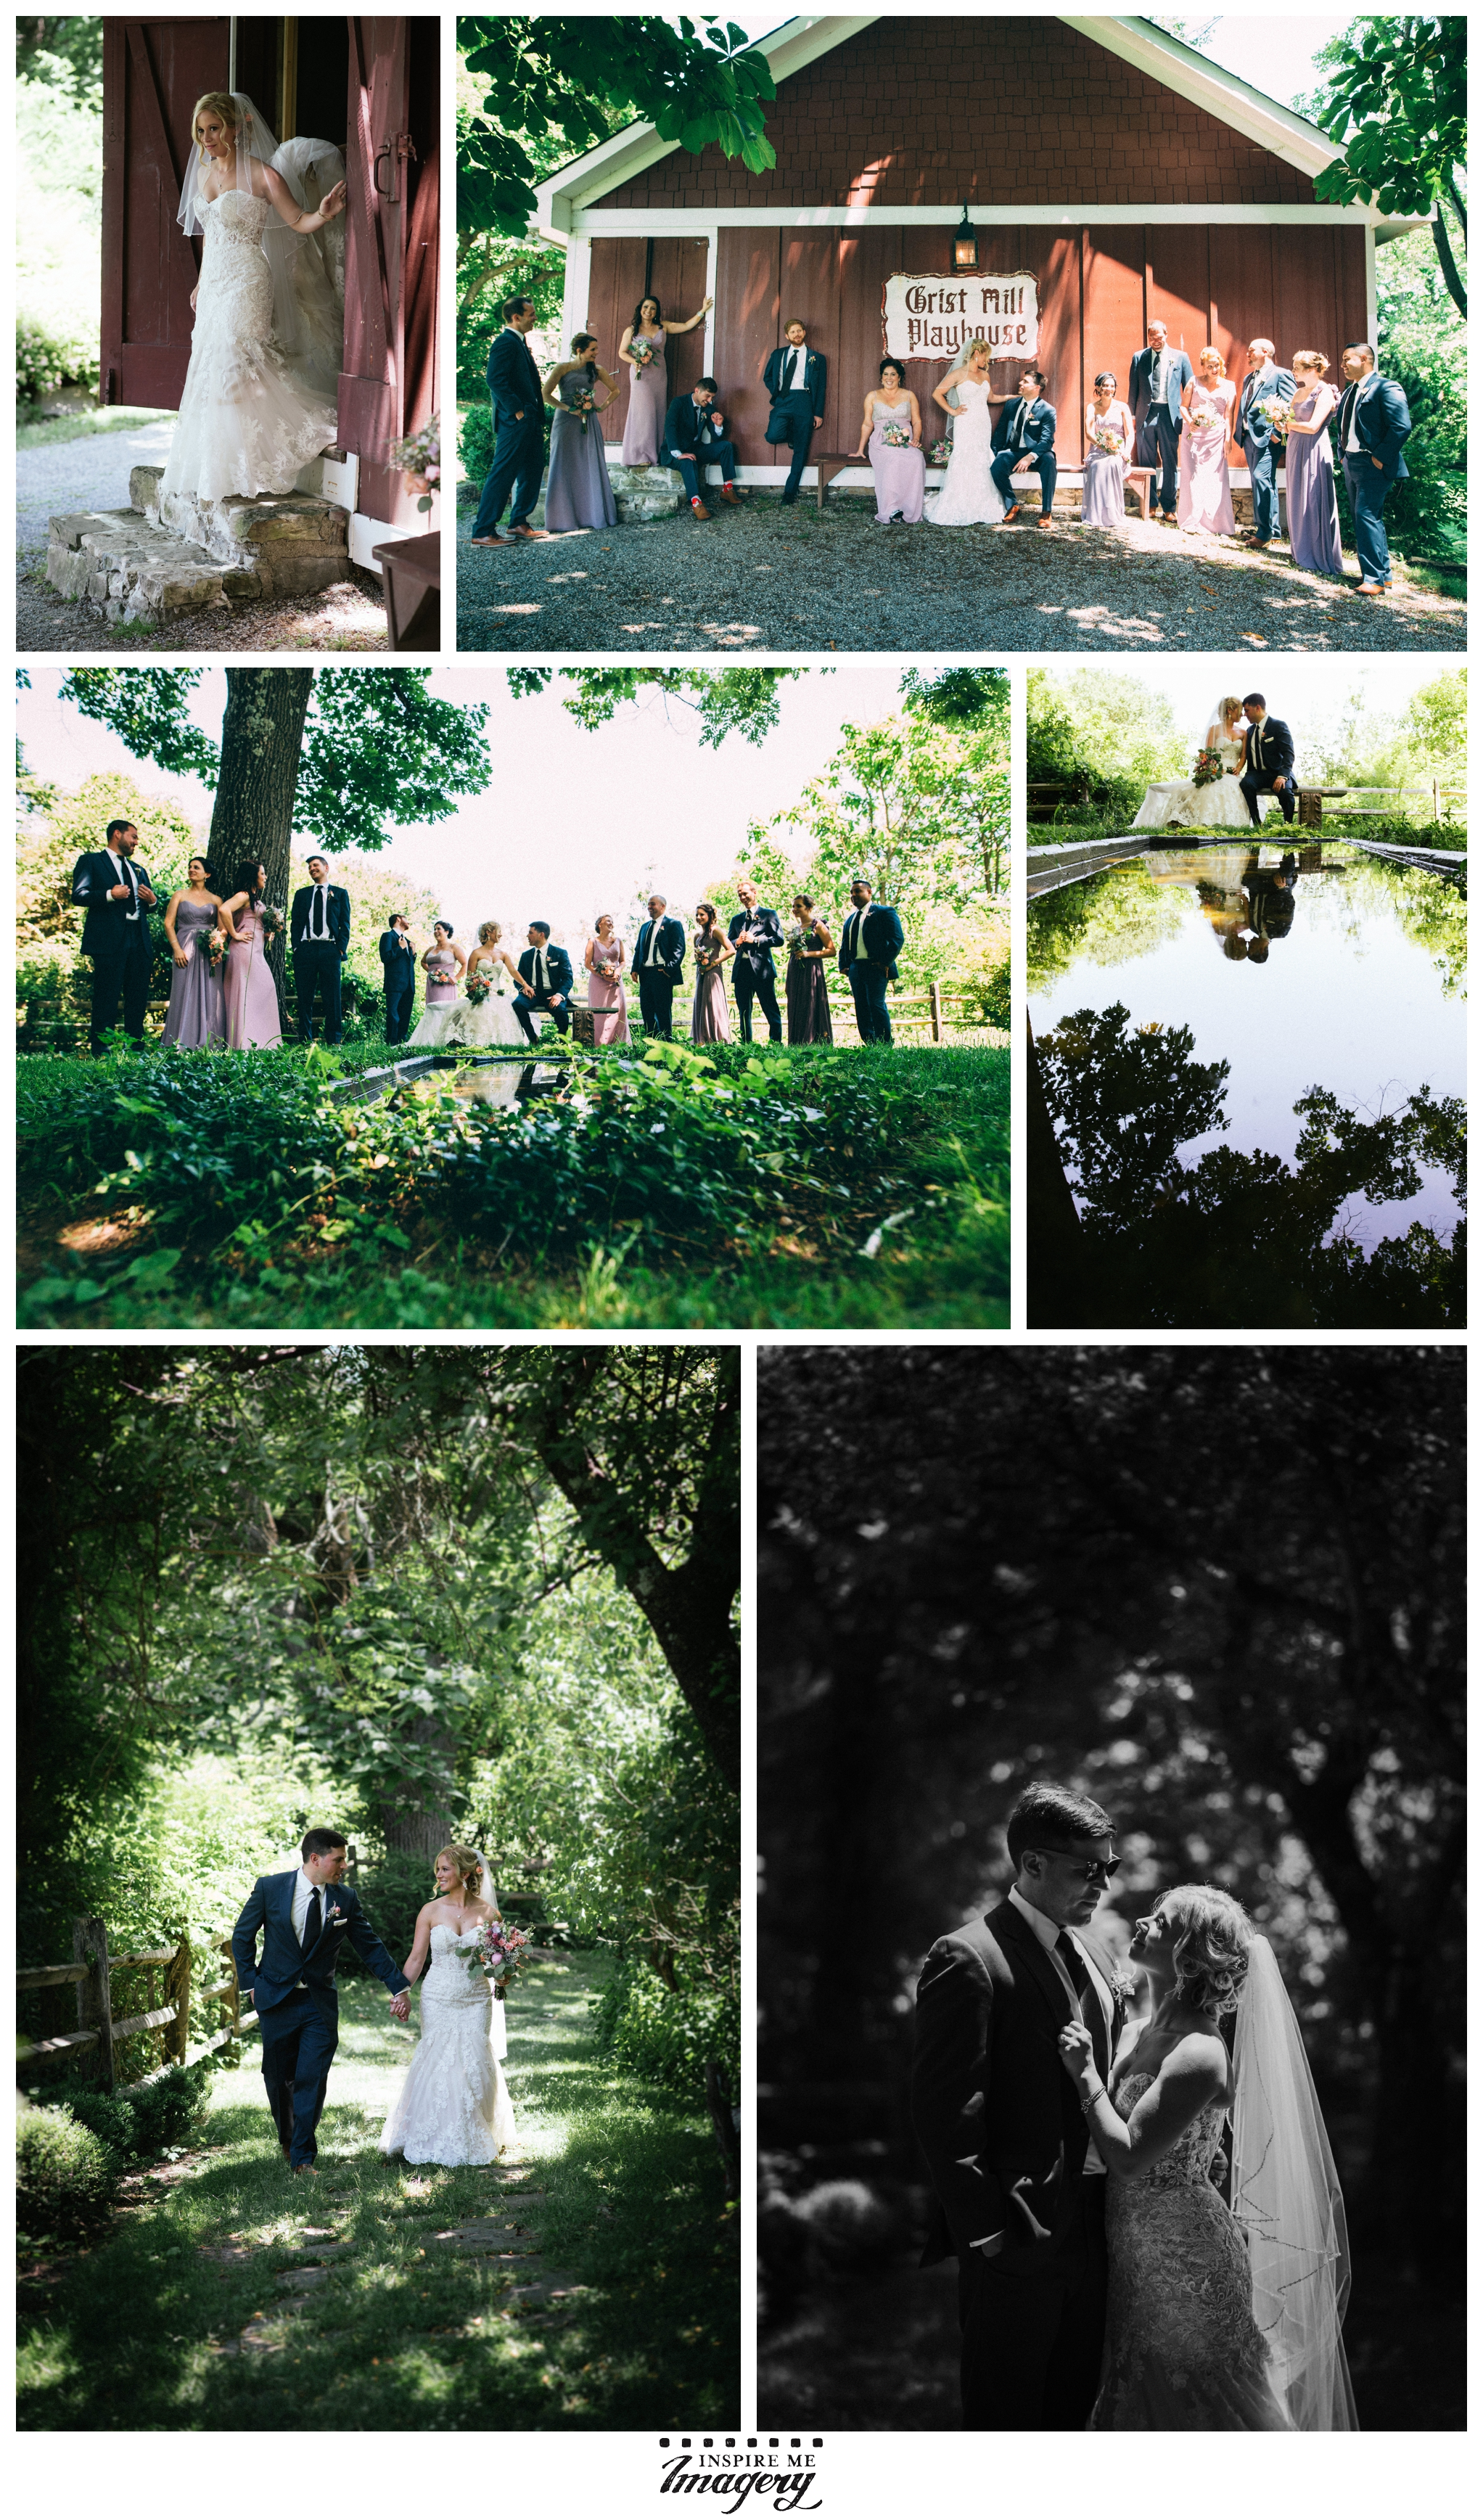 Wedding Photos at the Crossed Keys Estate / 289 Pequest Rd, Andover, NJ 07821 /  http://www.crossedkeys.com/  / (973) 786-6661